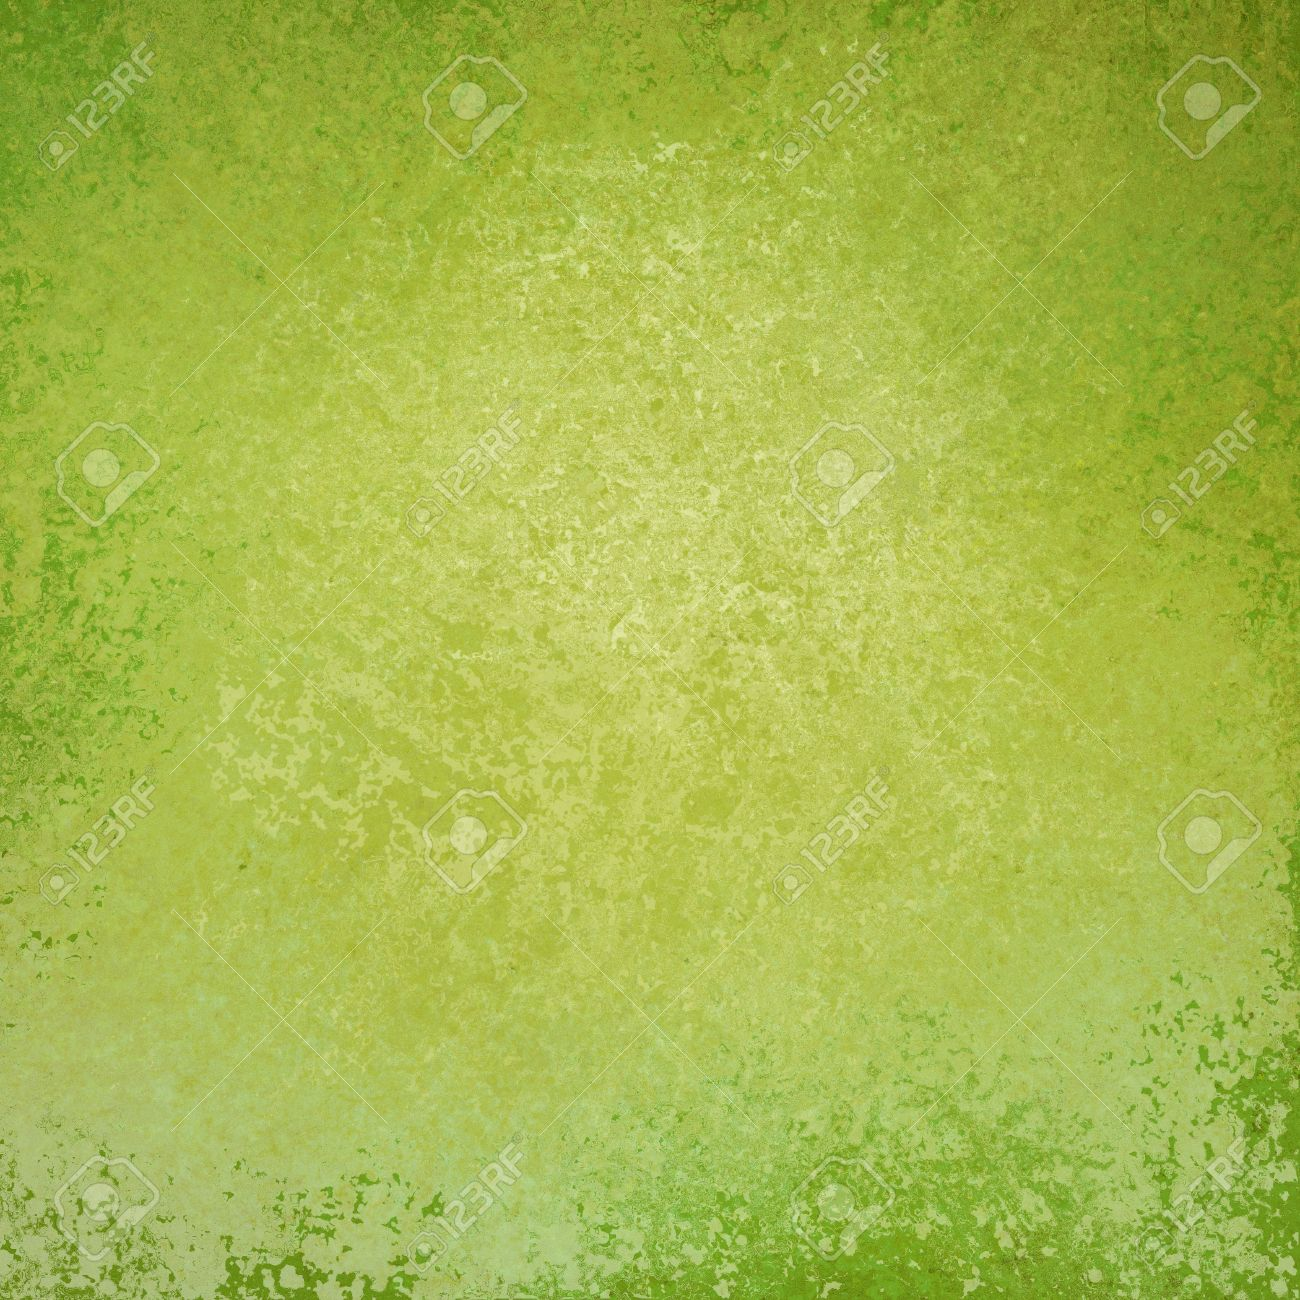 Solid Green Background Design With Distressed Vintage Texture ...